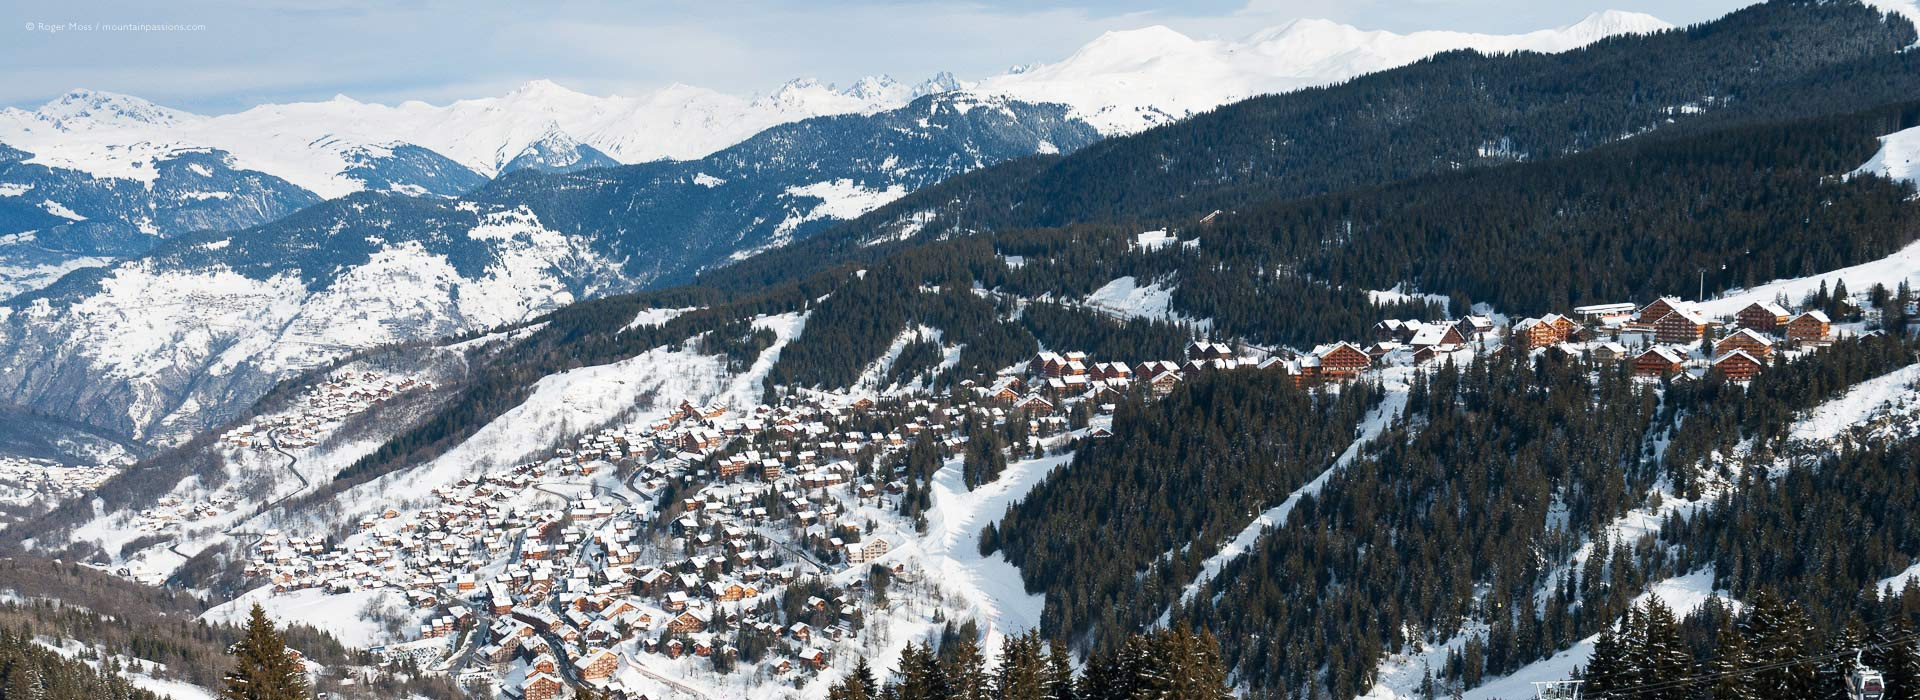 View from mountainside of Meribel ski village, in the French Alps.